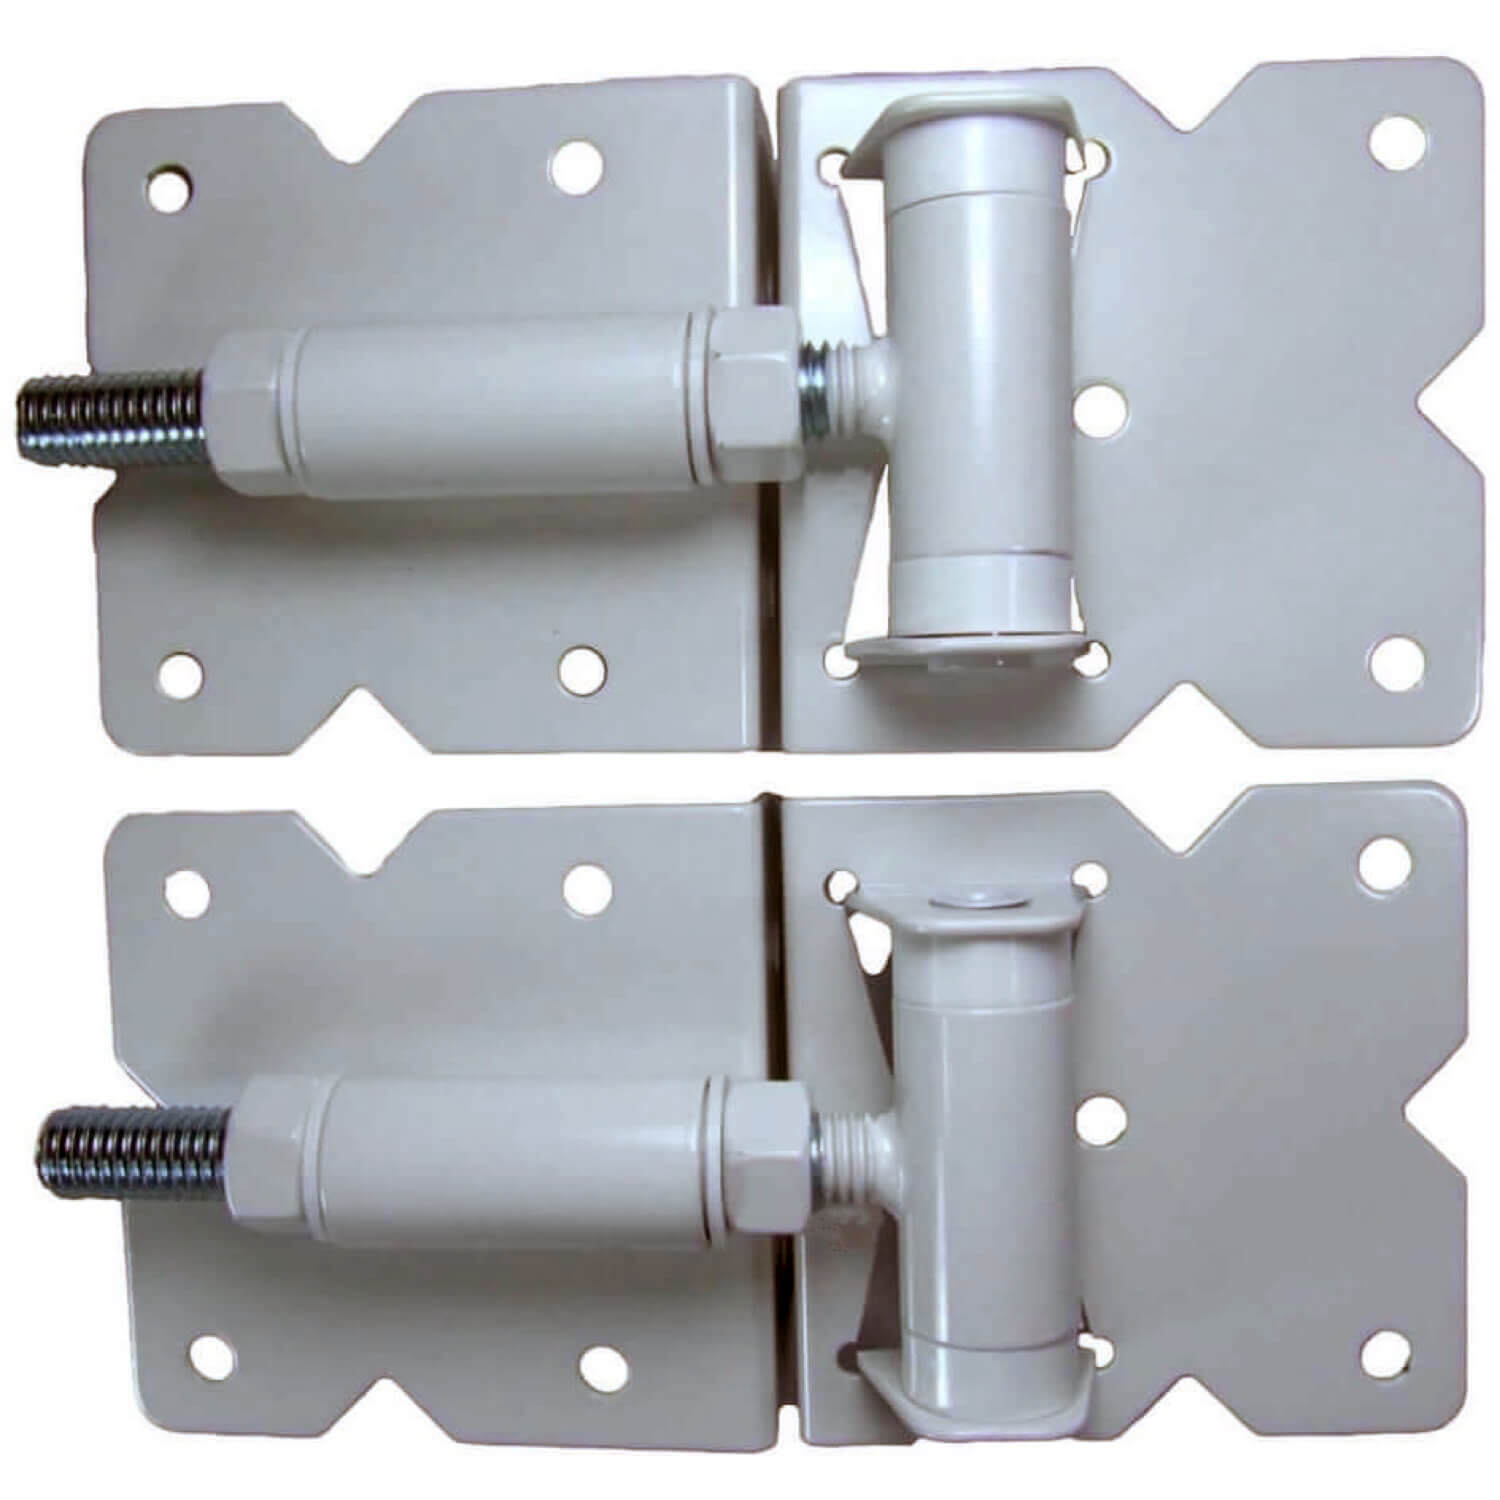 Vinyl Gate Hinges White For Vinyl Pvc Etc Fencing Vinyl